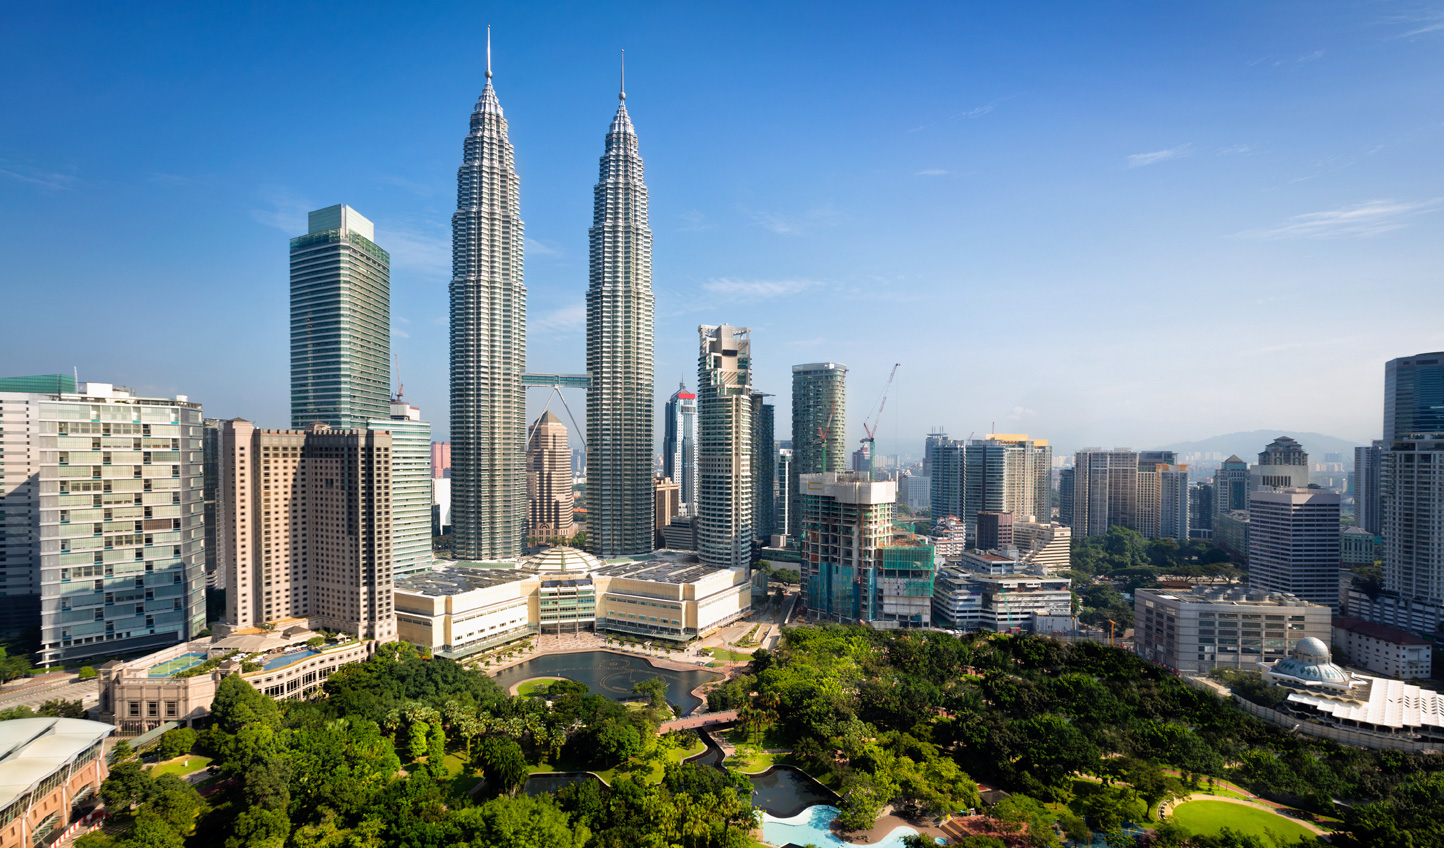 Take in the iconic sights of Kuala Lumpur